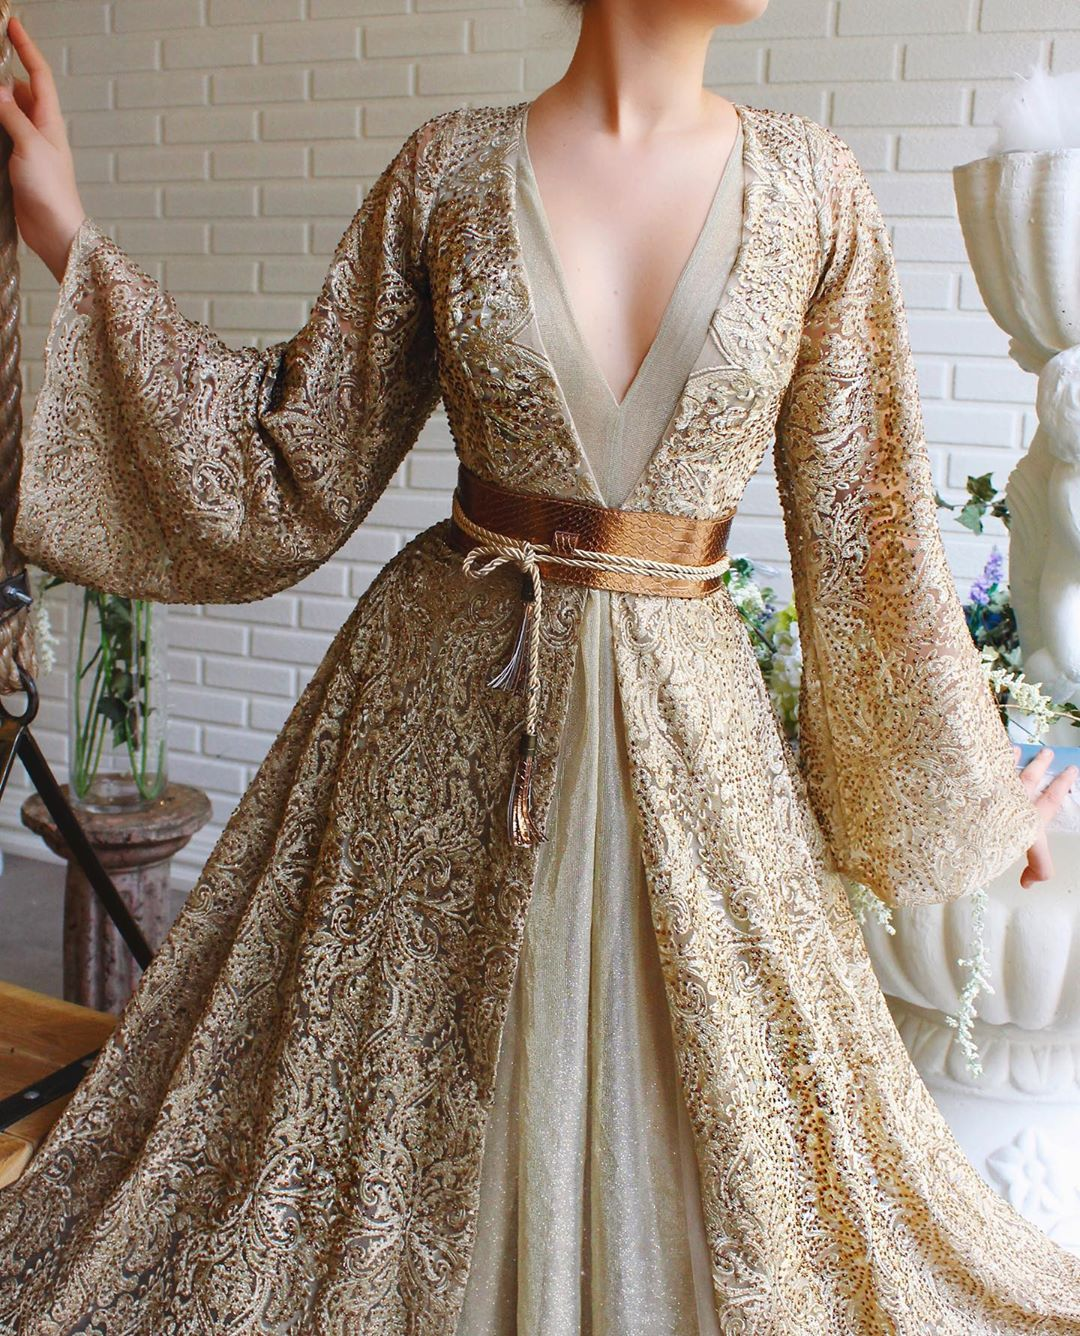 Gold Laced Gown Decorated In Sequins with Bell Sleeves & Hanging Belt.